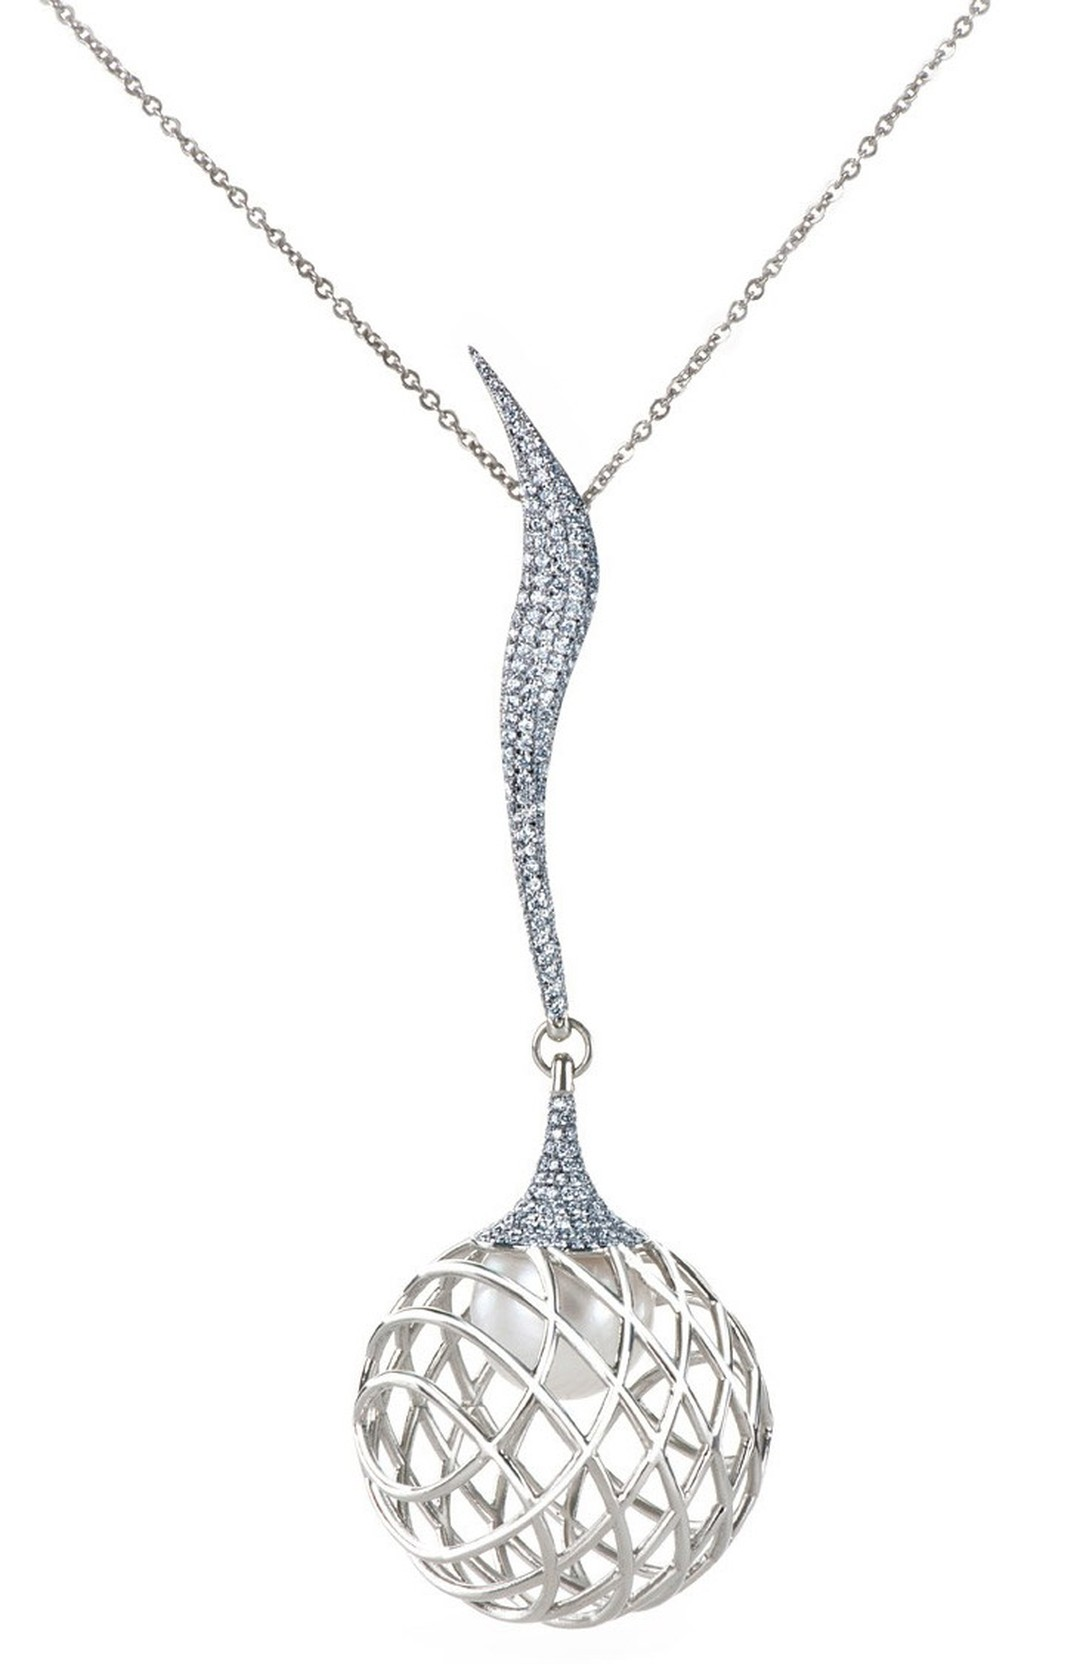 The-Palladium-Fine-Jewellery-Lara-Bohinc-Pendant.jpg